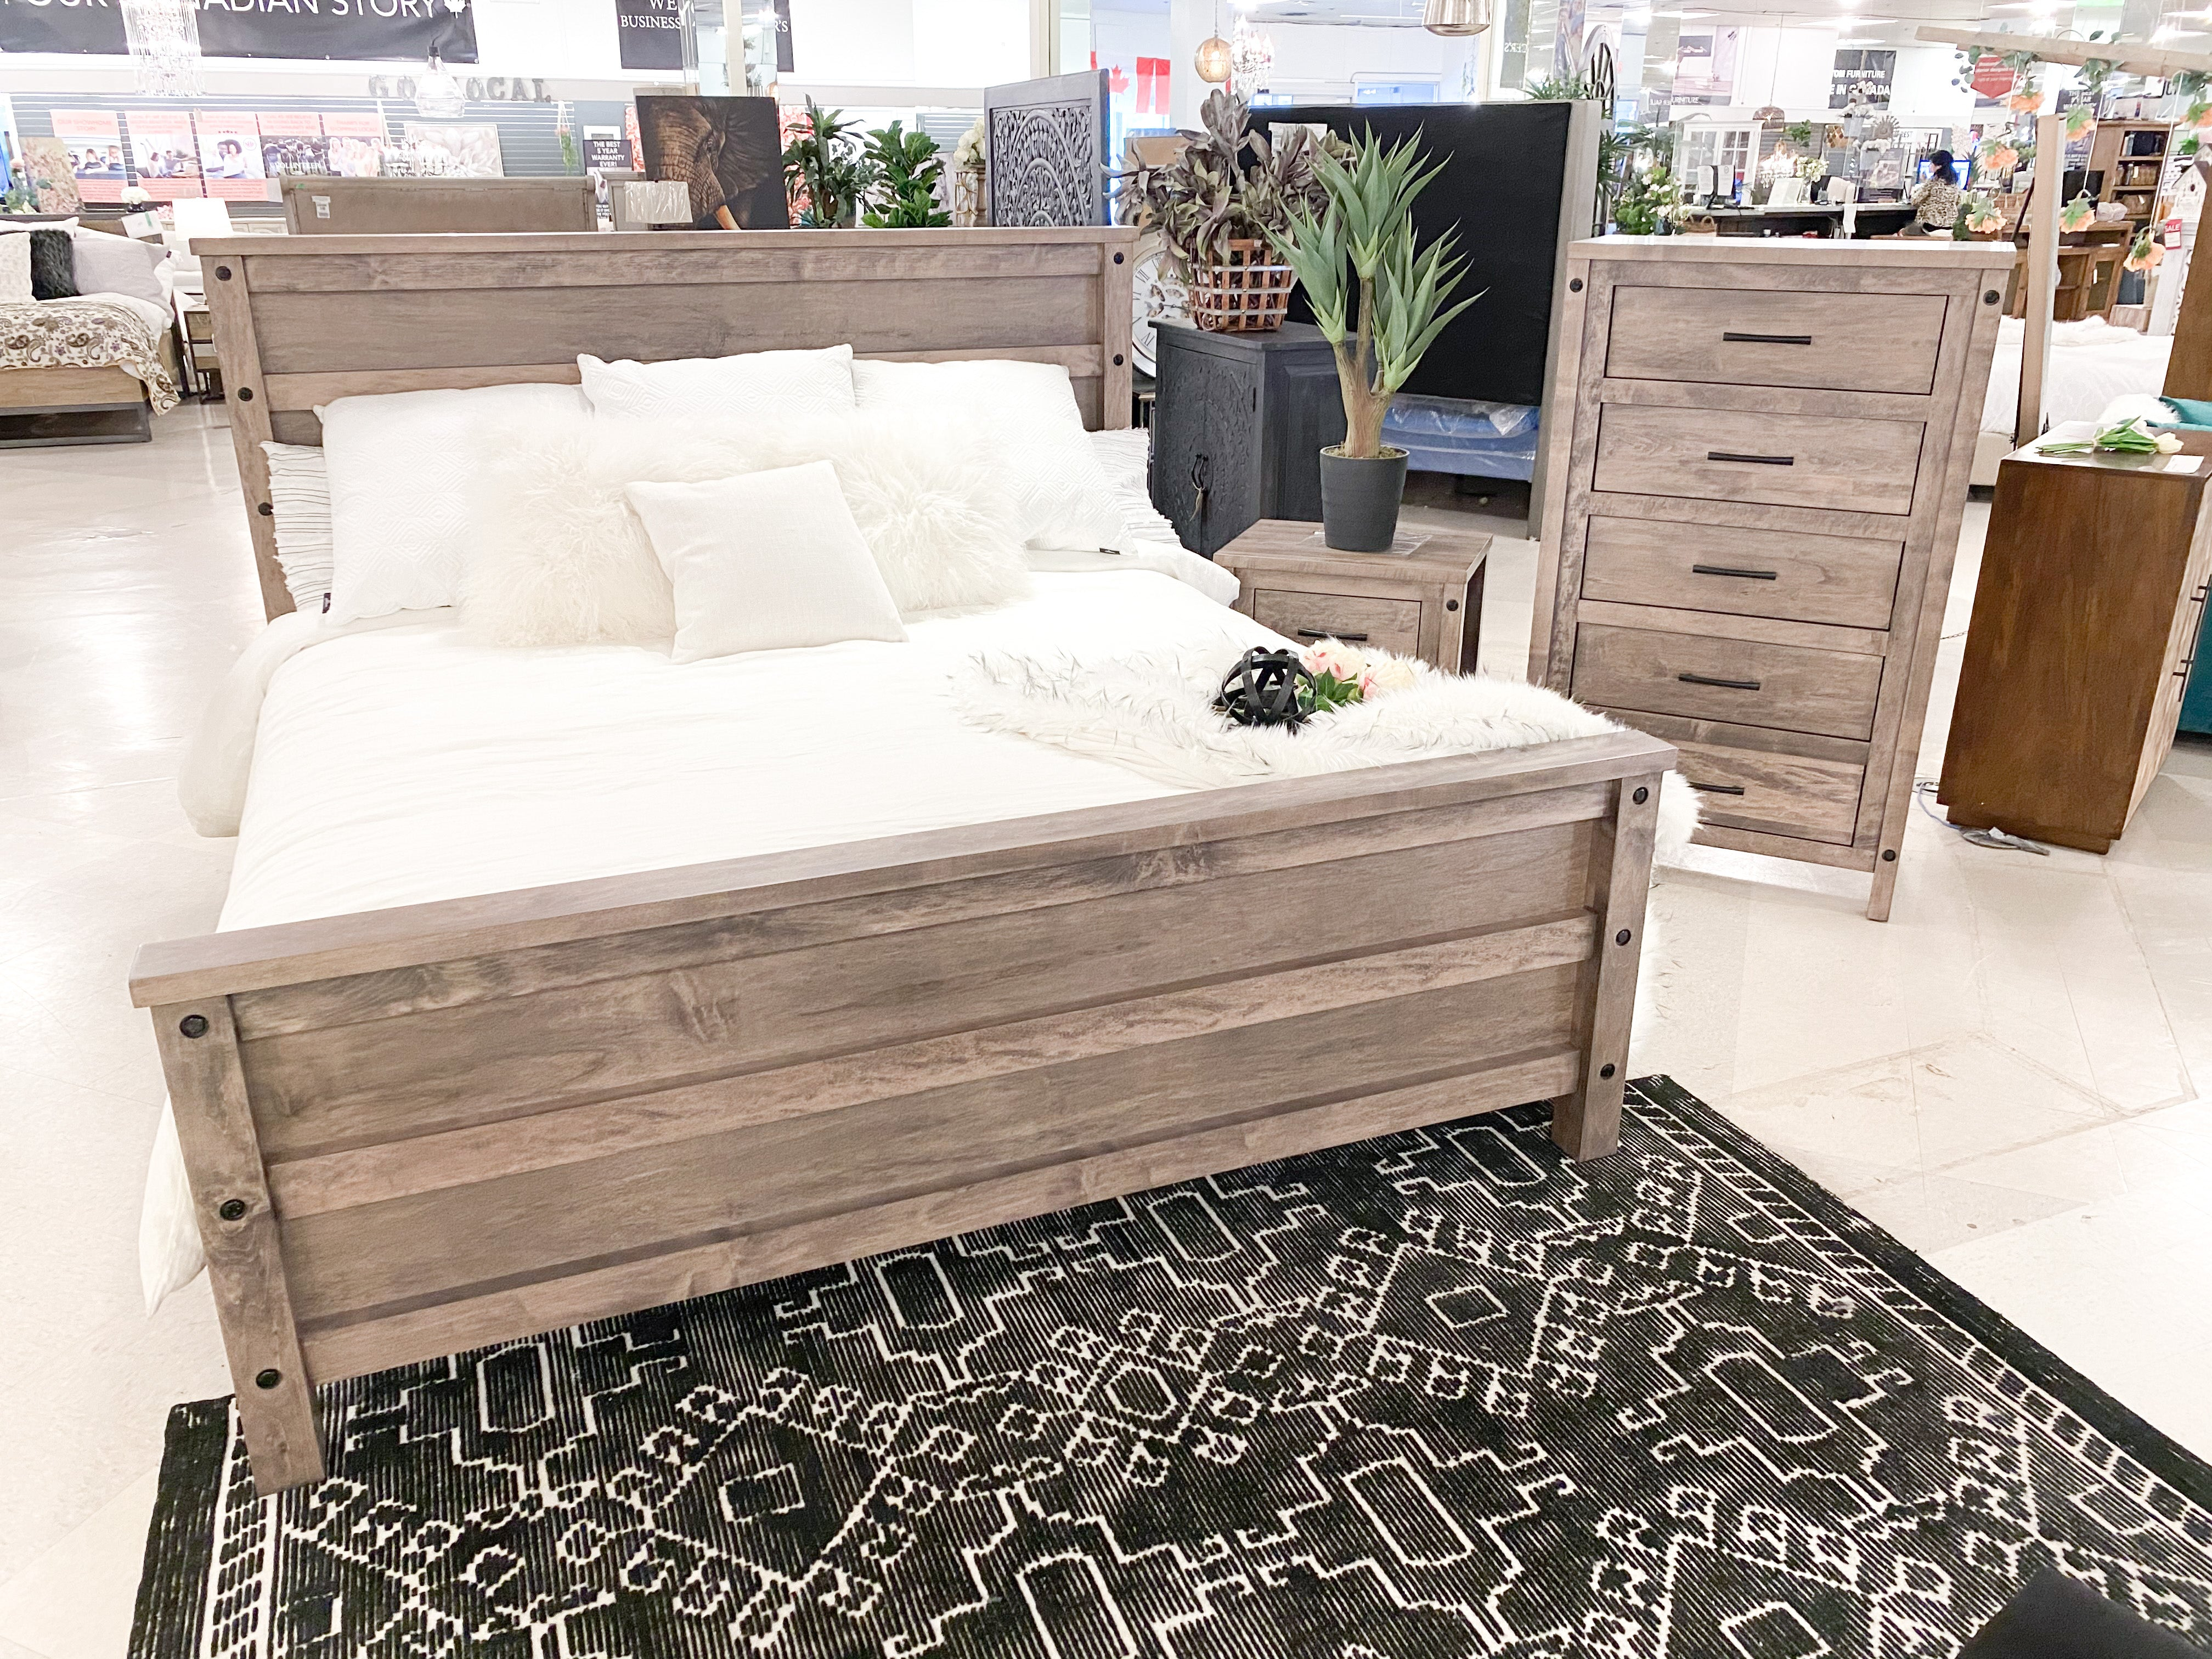 Purba Custom Bedroom Collection, Made in Canada 🇨🇦 | Calgary's Furniture Store